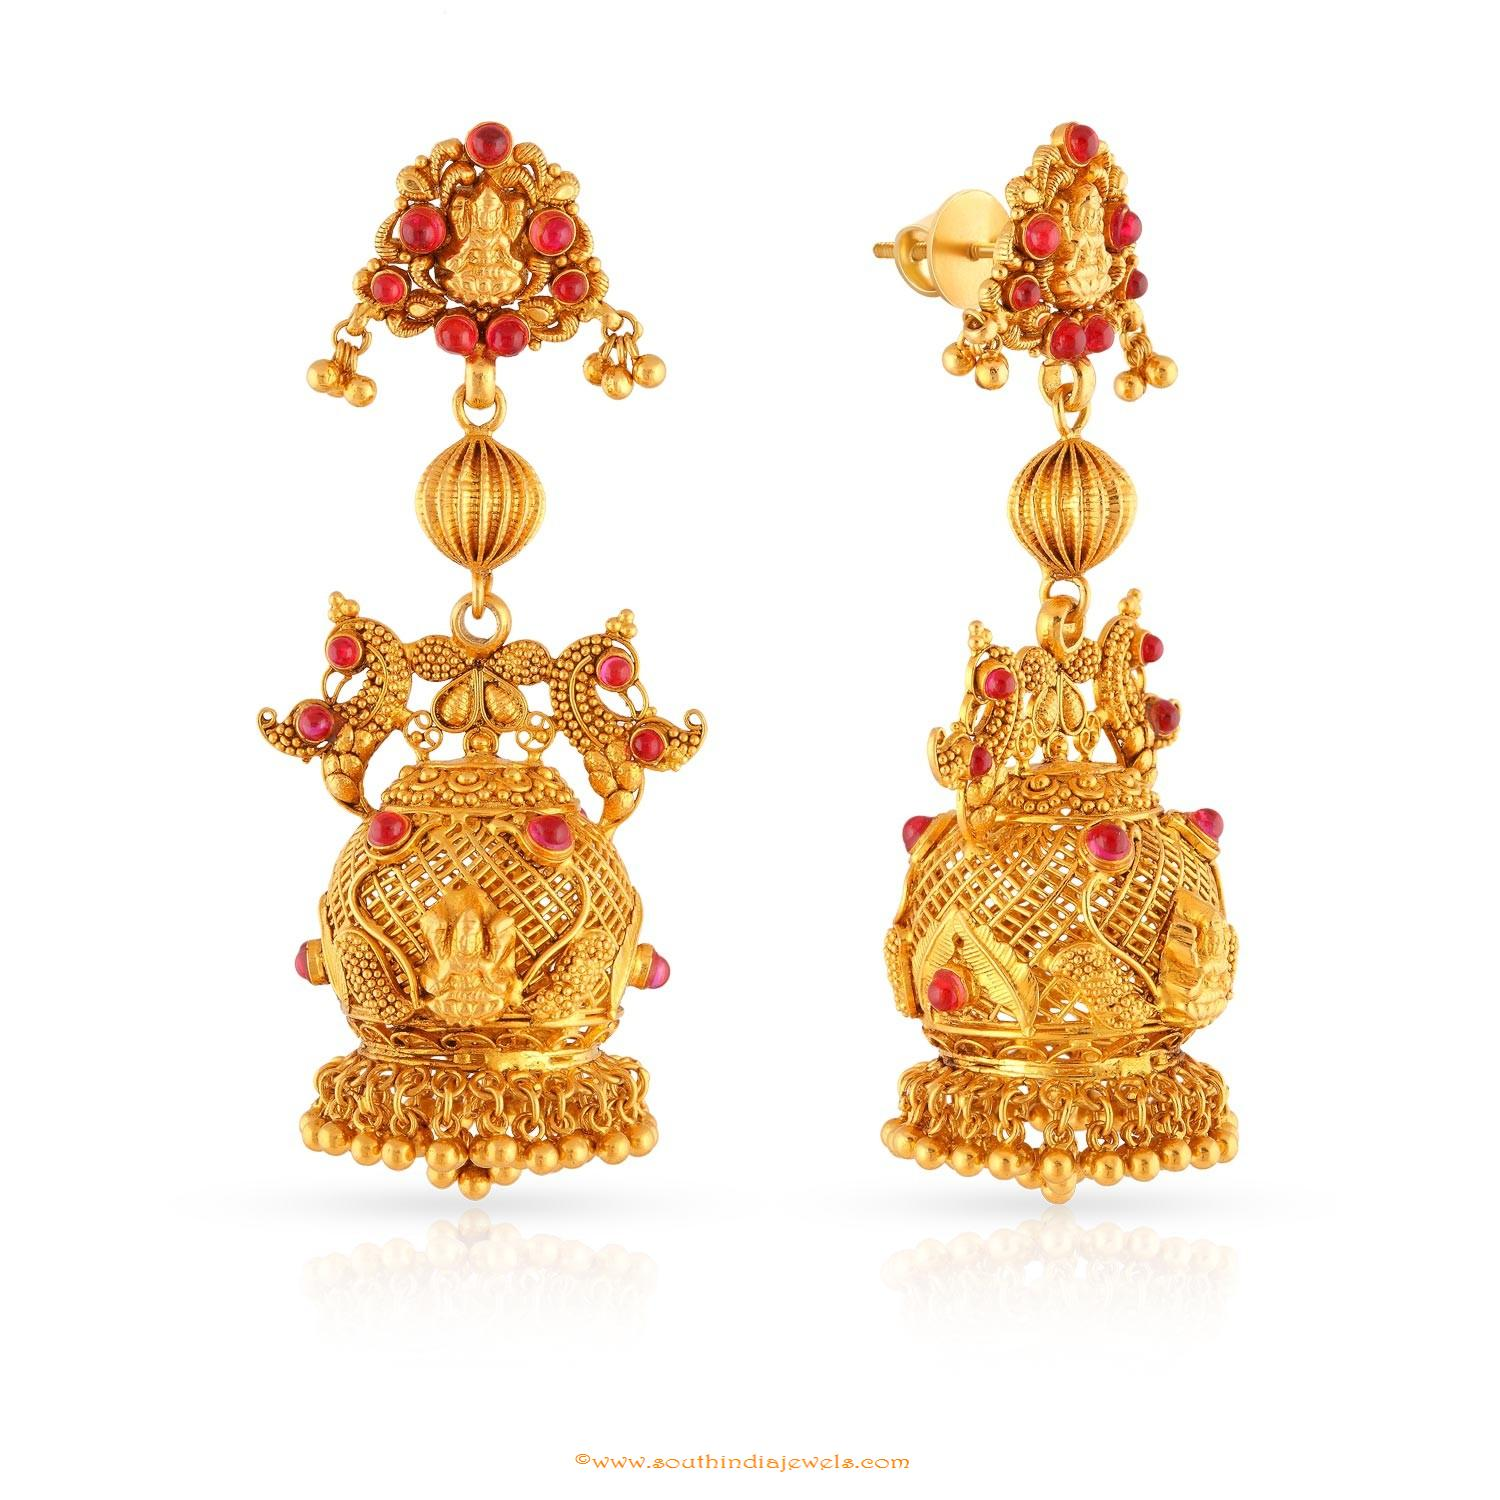 jewellery casual earrings earring india buy diamond tamera shop gold online